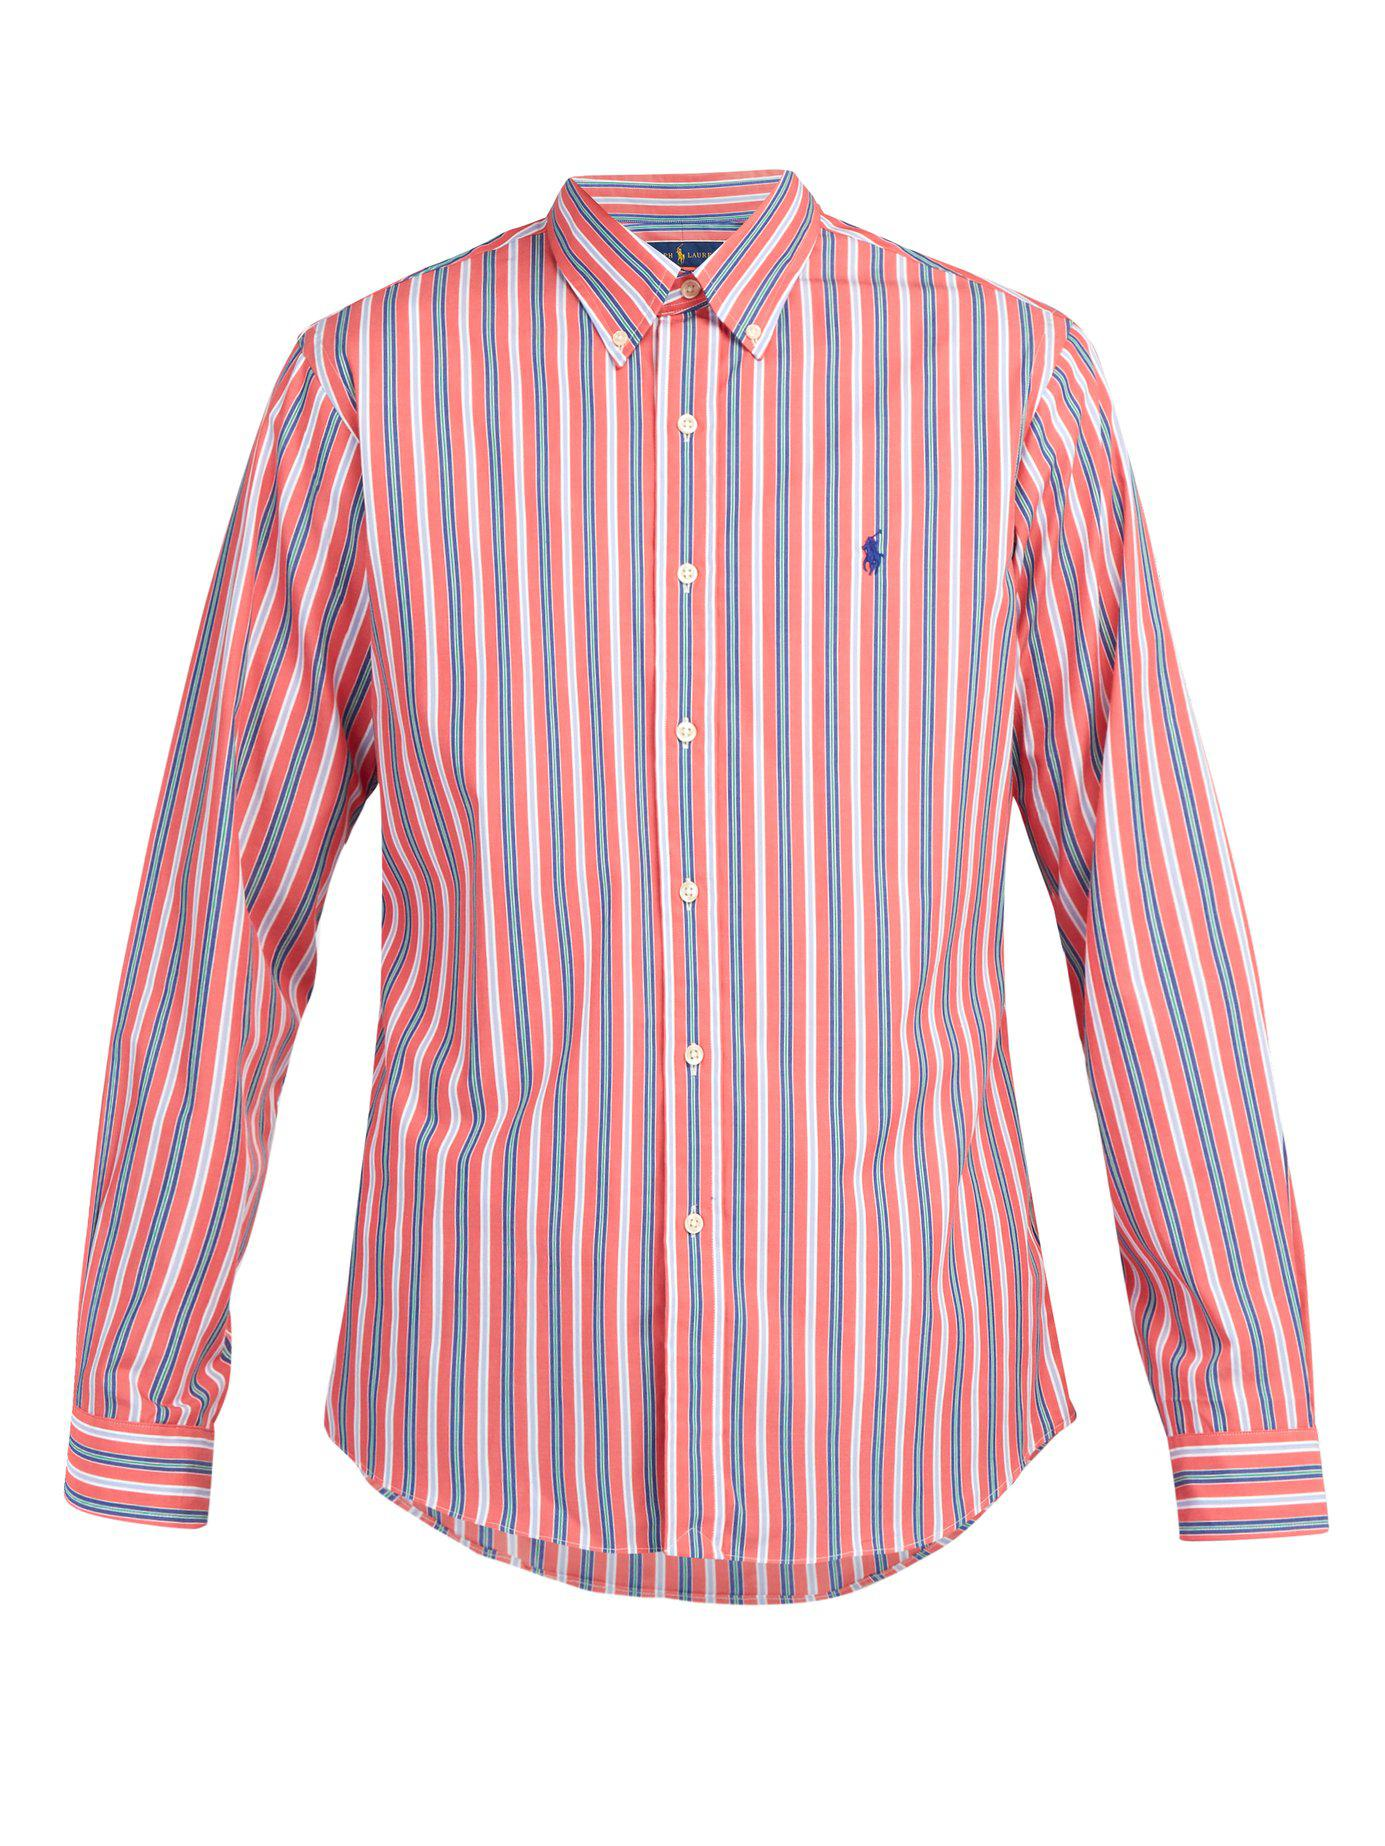 2058ab94e Lyst - Polo Ralph Lauren Slim Fit Striped Cotton Poplin Shirt in Red ...